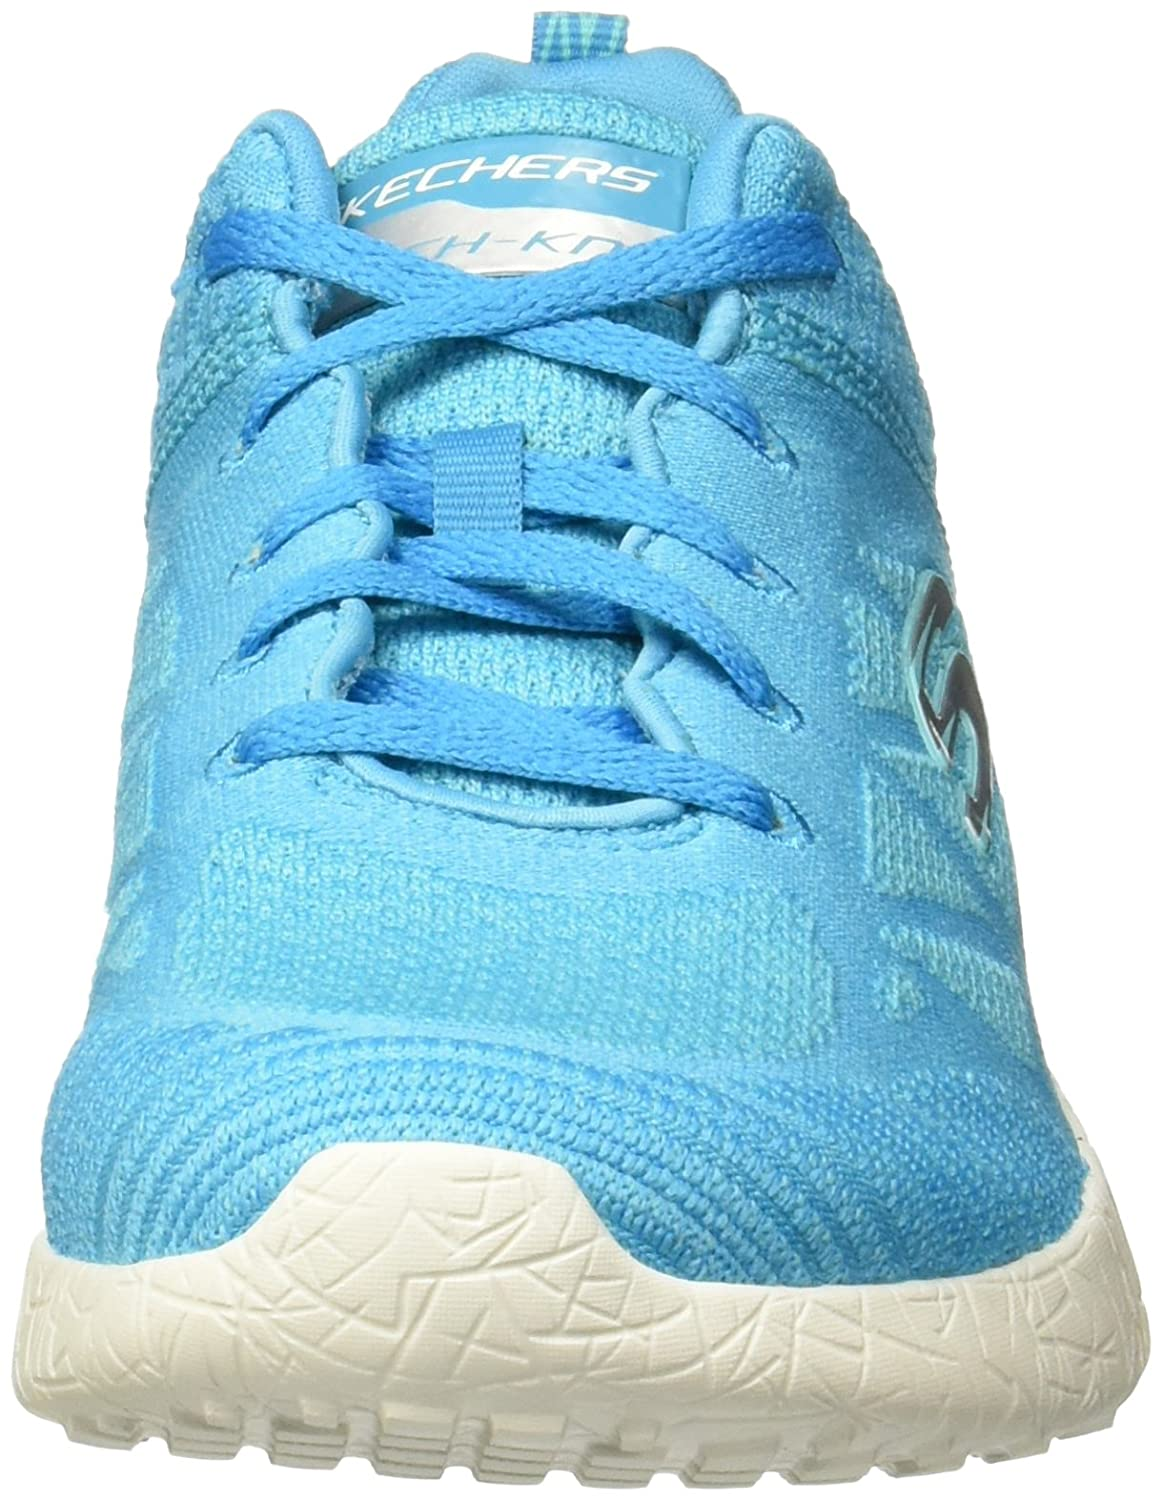 Skechers Sport Women's Burst Fashion Sneaker B01GET7AH6 6.5 B(M) US|Blue